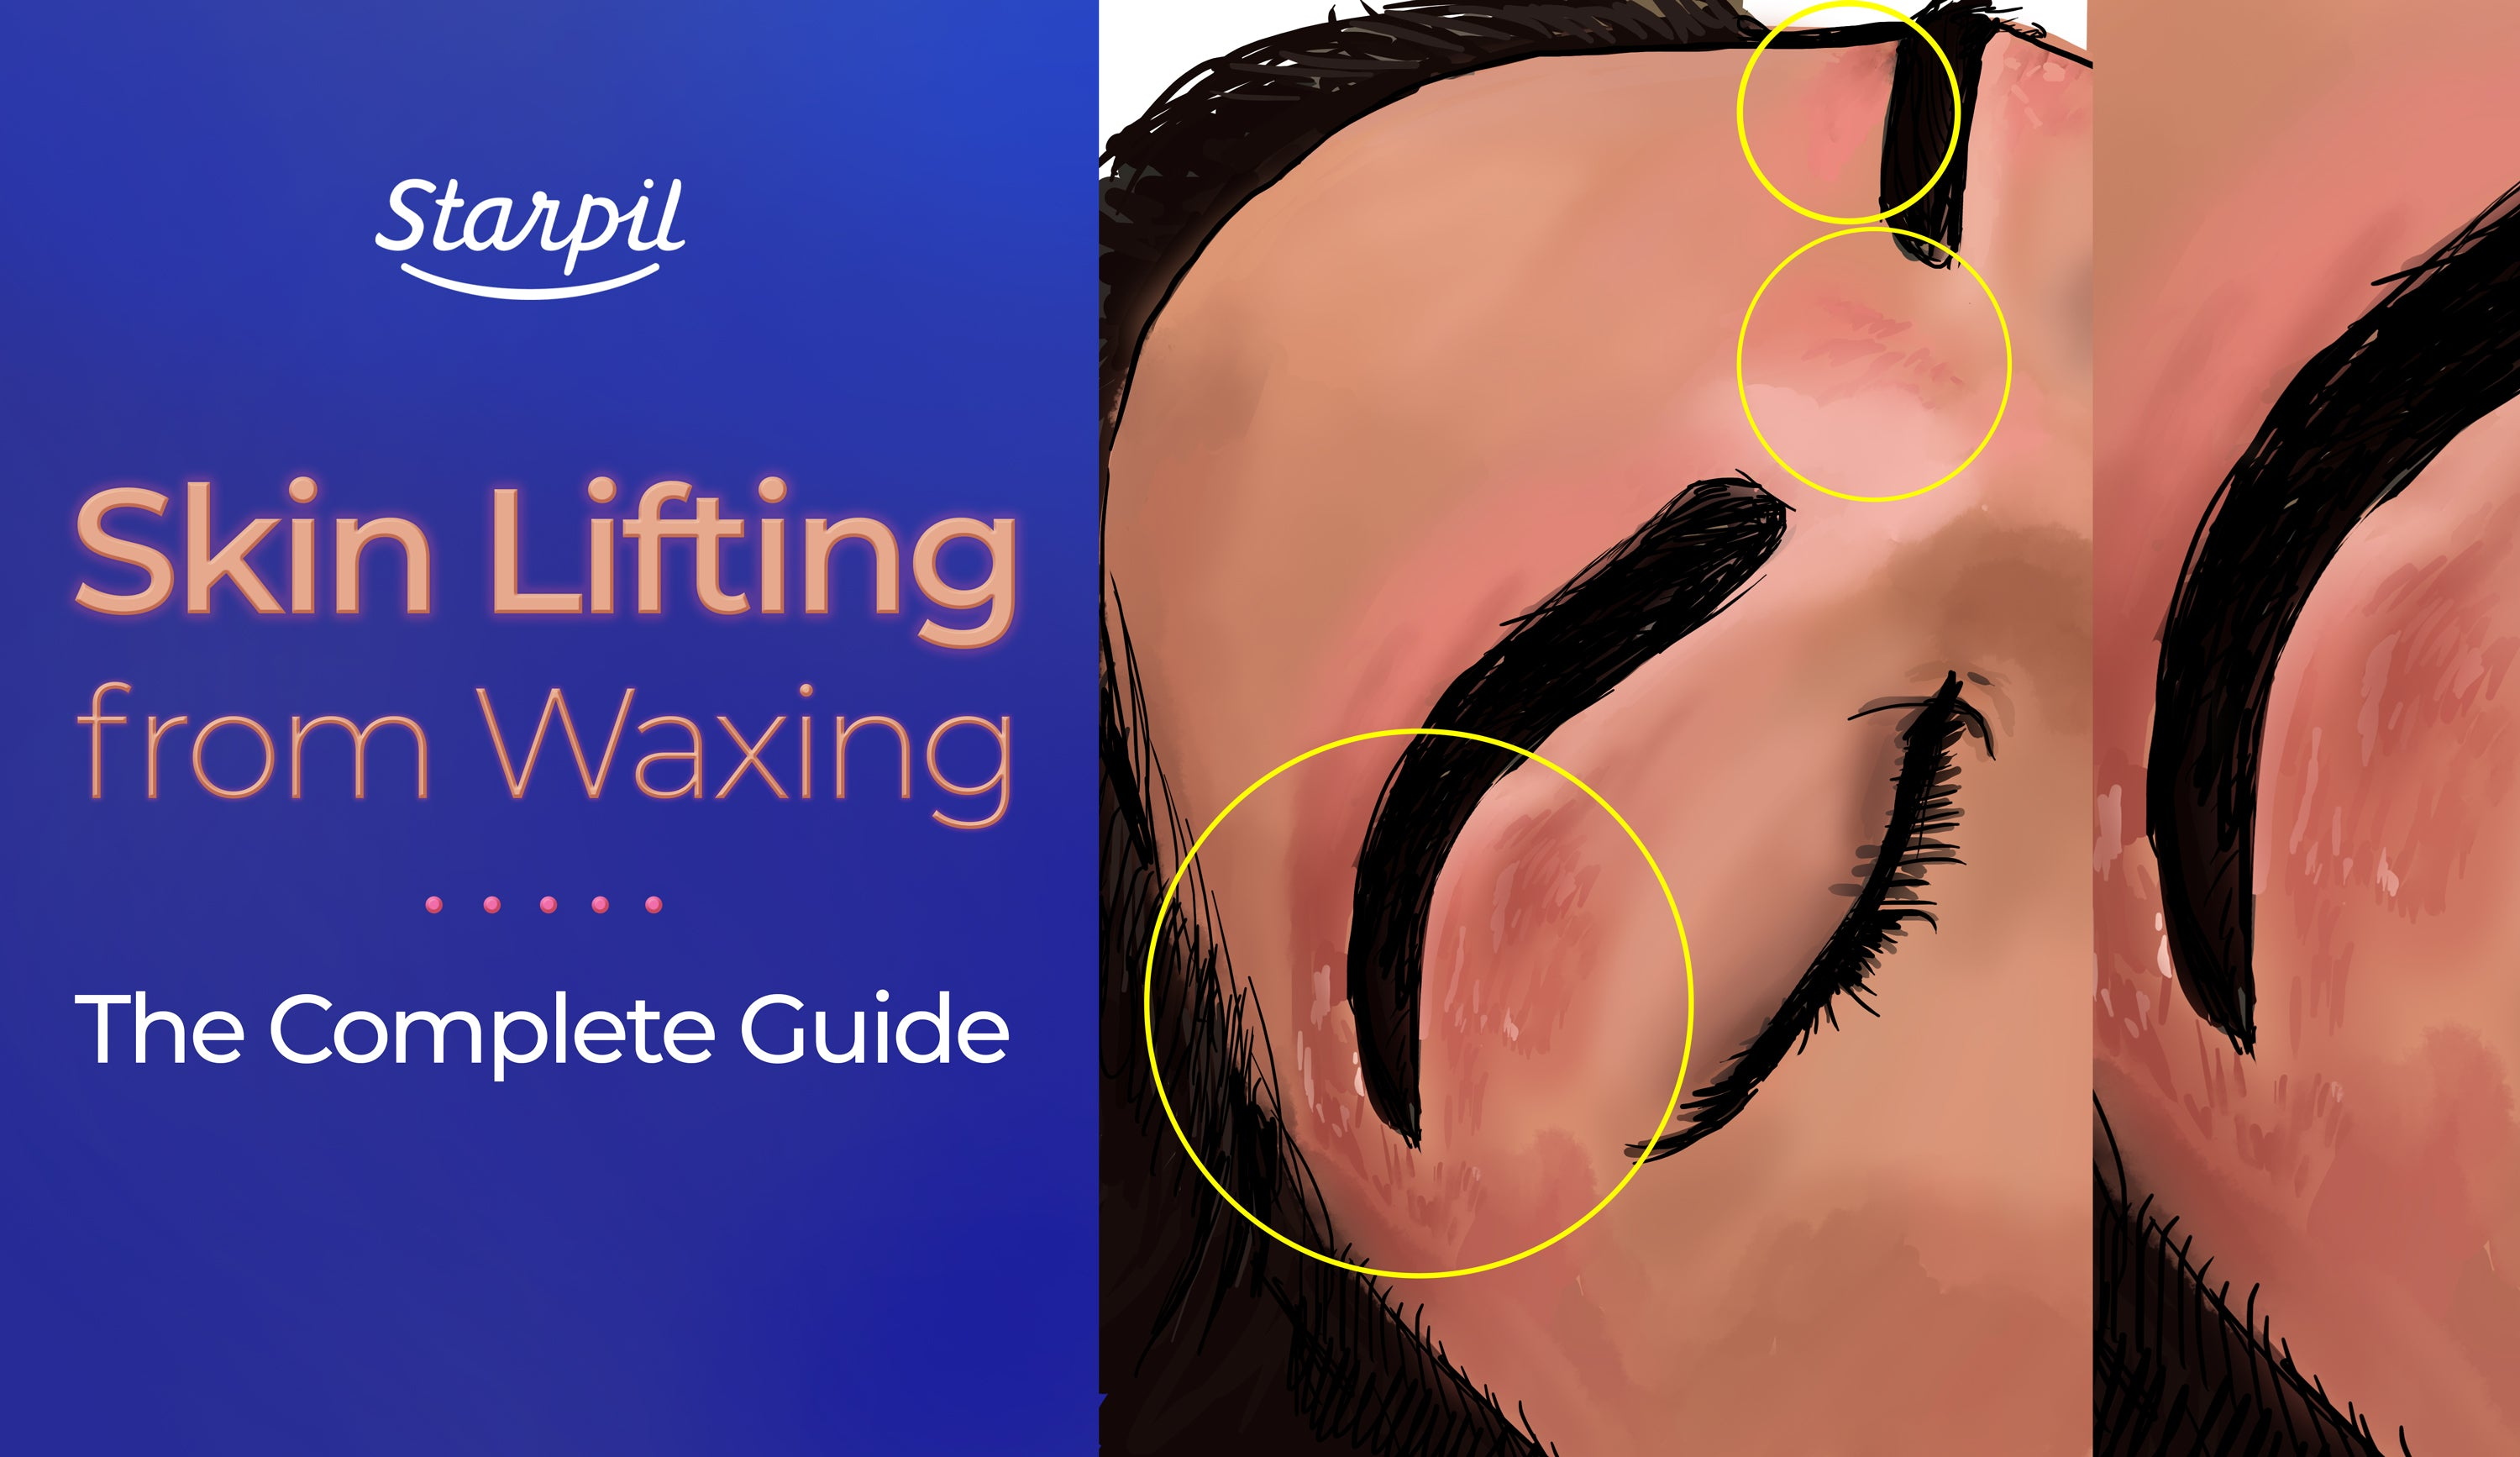 Skin Lifting from Waxing | The Complete Guide